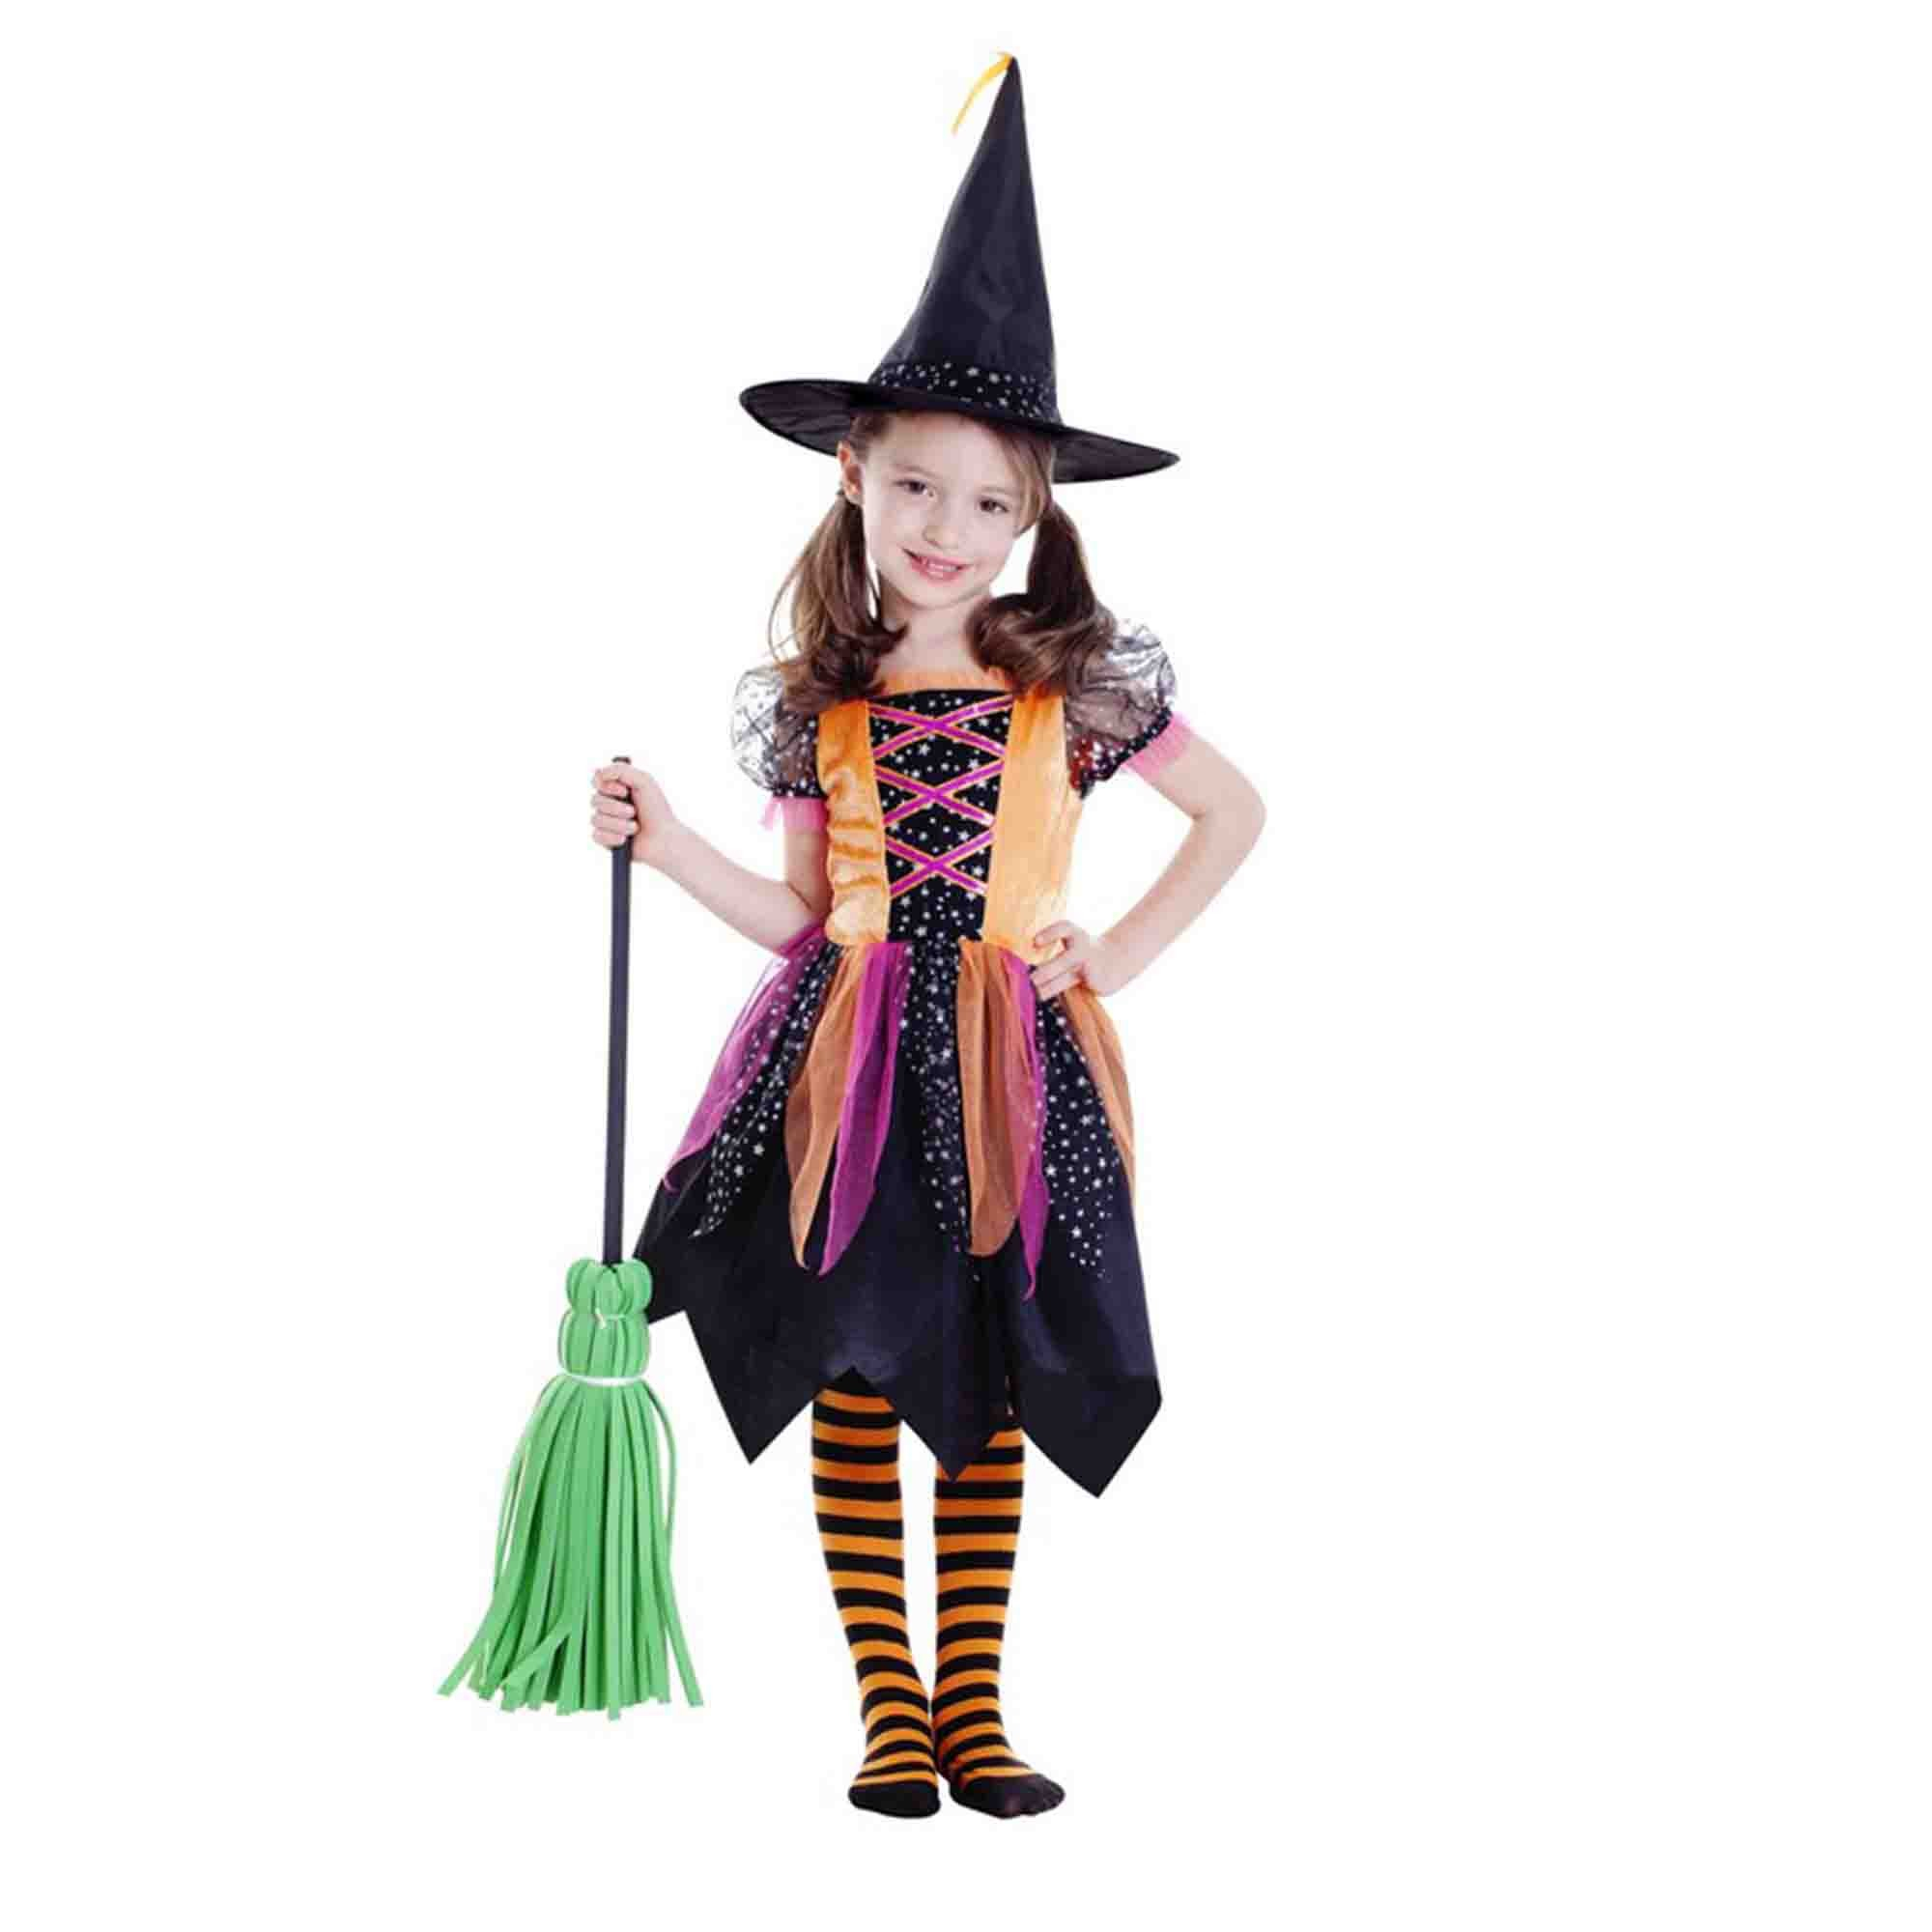 Deluxe Witch Girl Costume (Small) 3-5 yrs